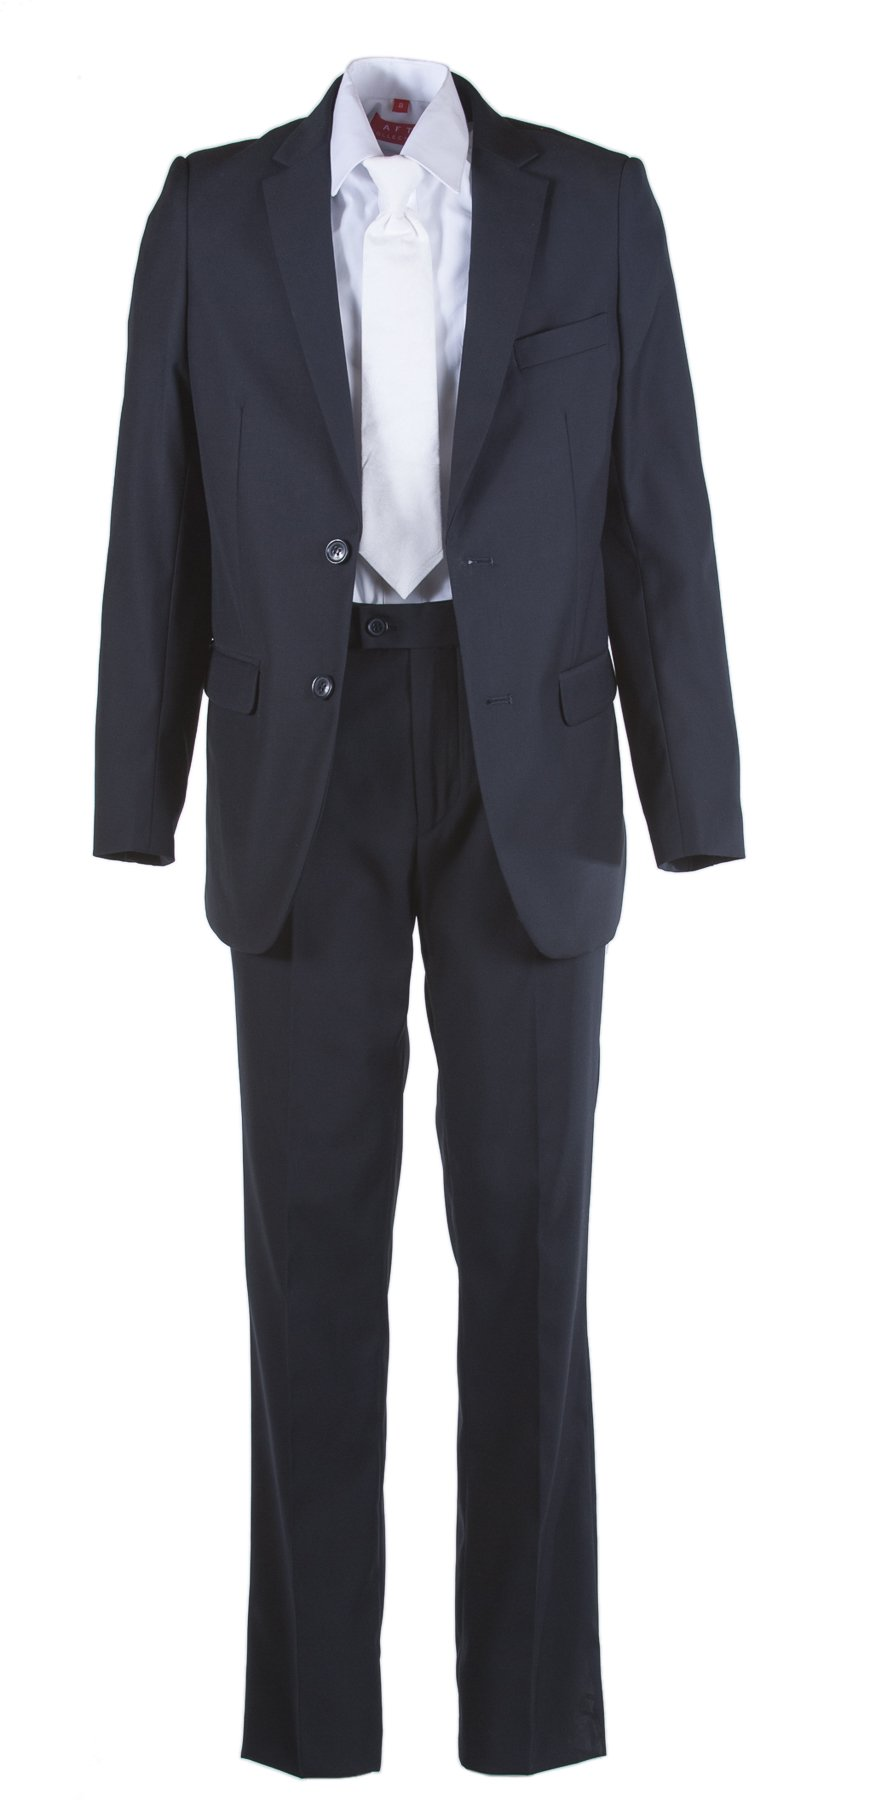 Boys Slim Fit Navy Blue Communion Suit with Suspenders & Paisley Tie (8 Boys)